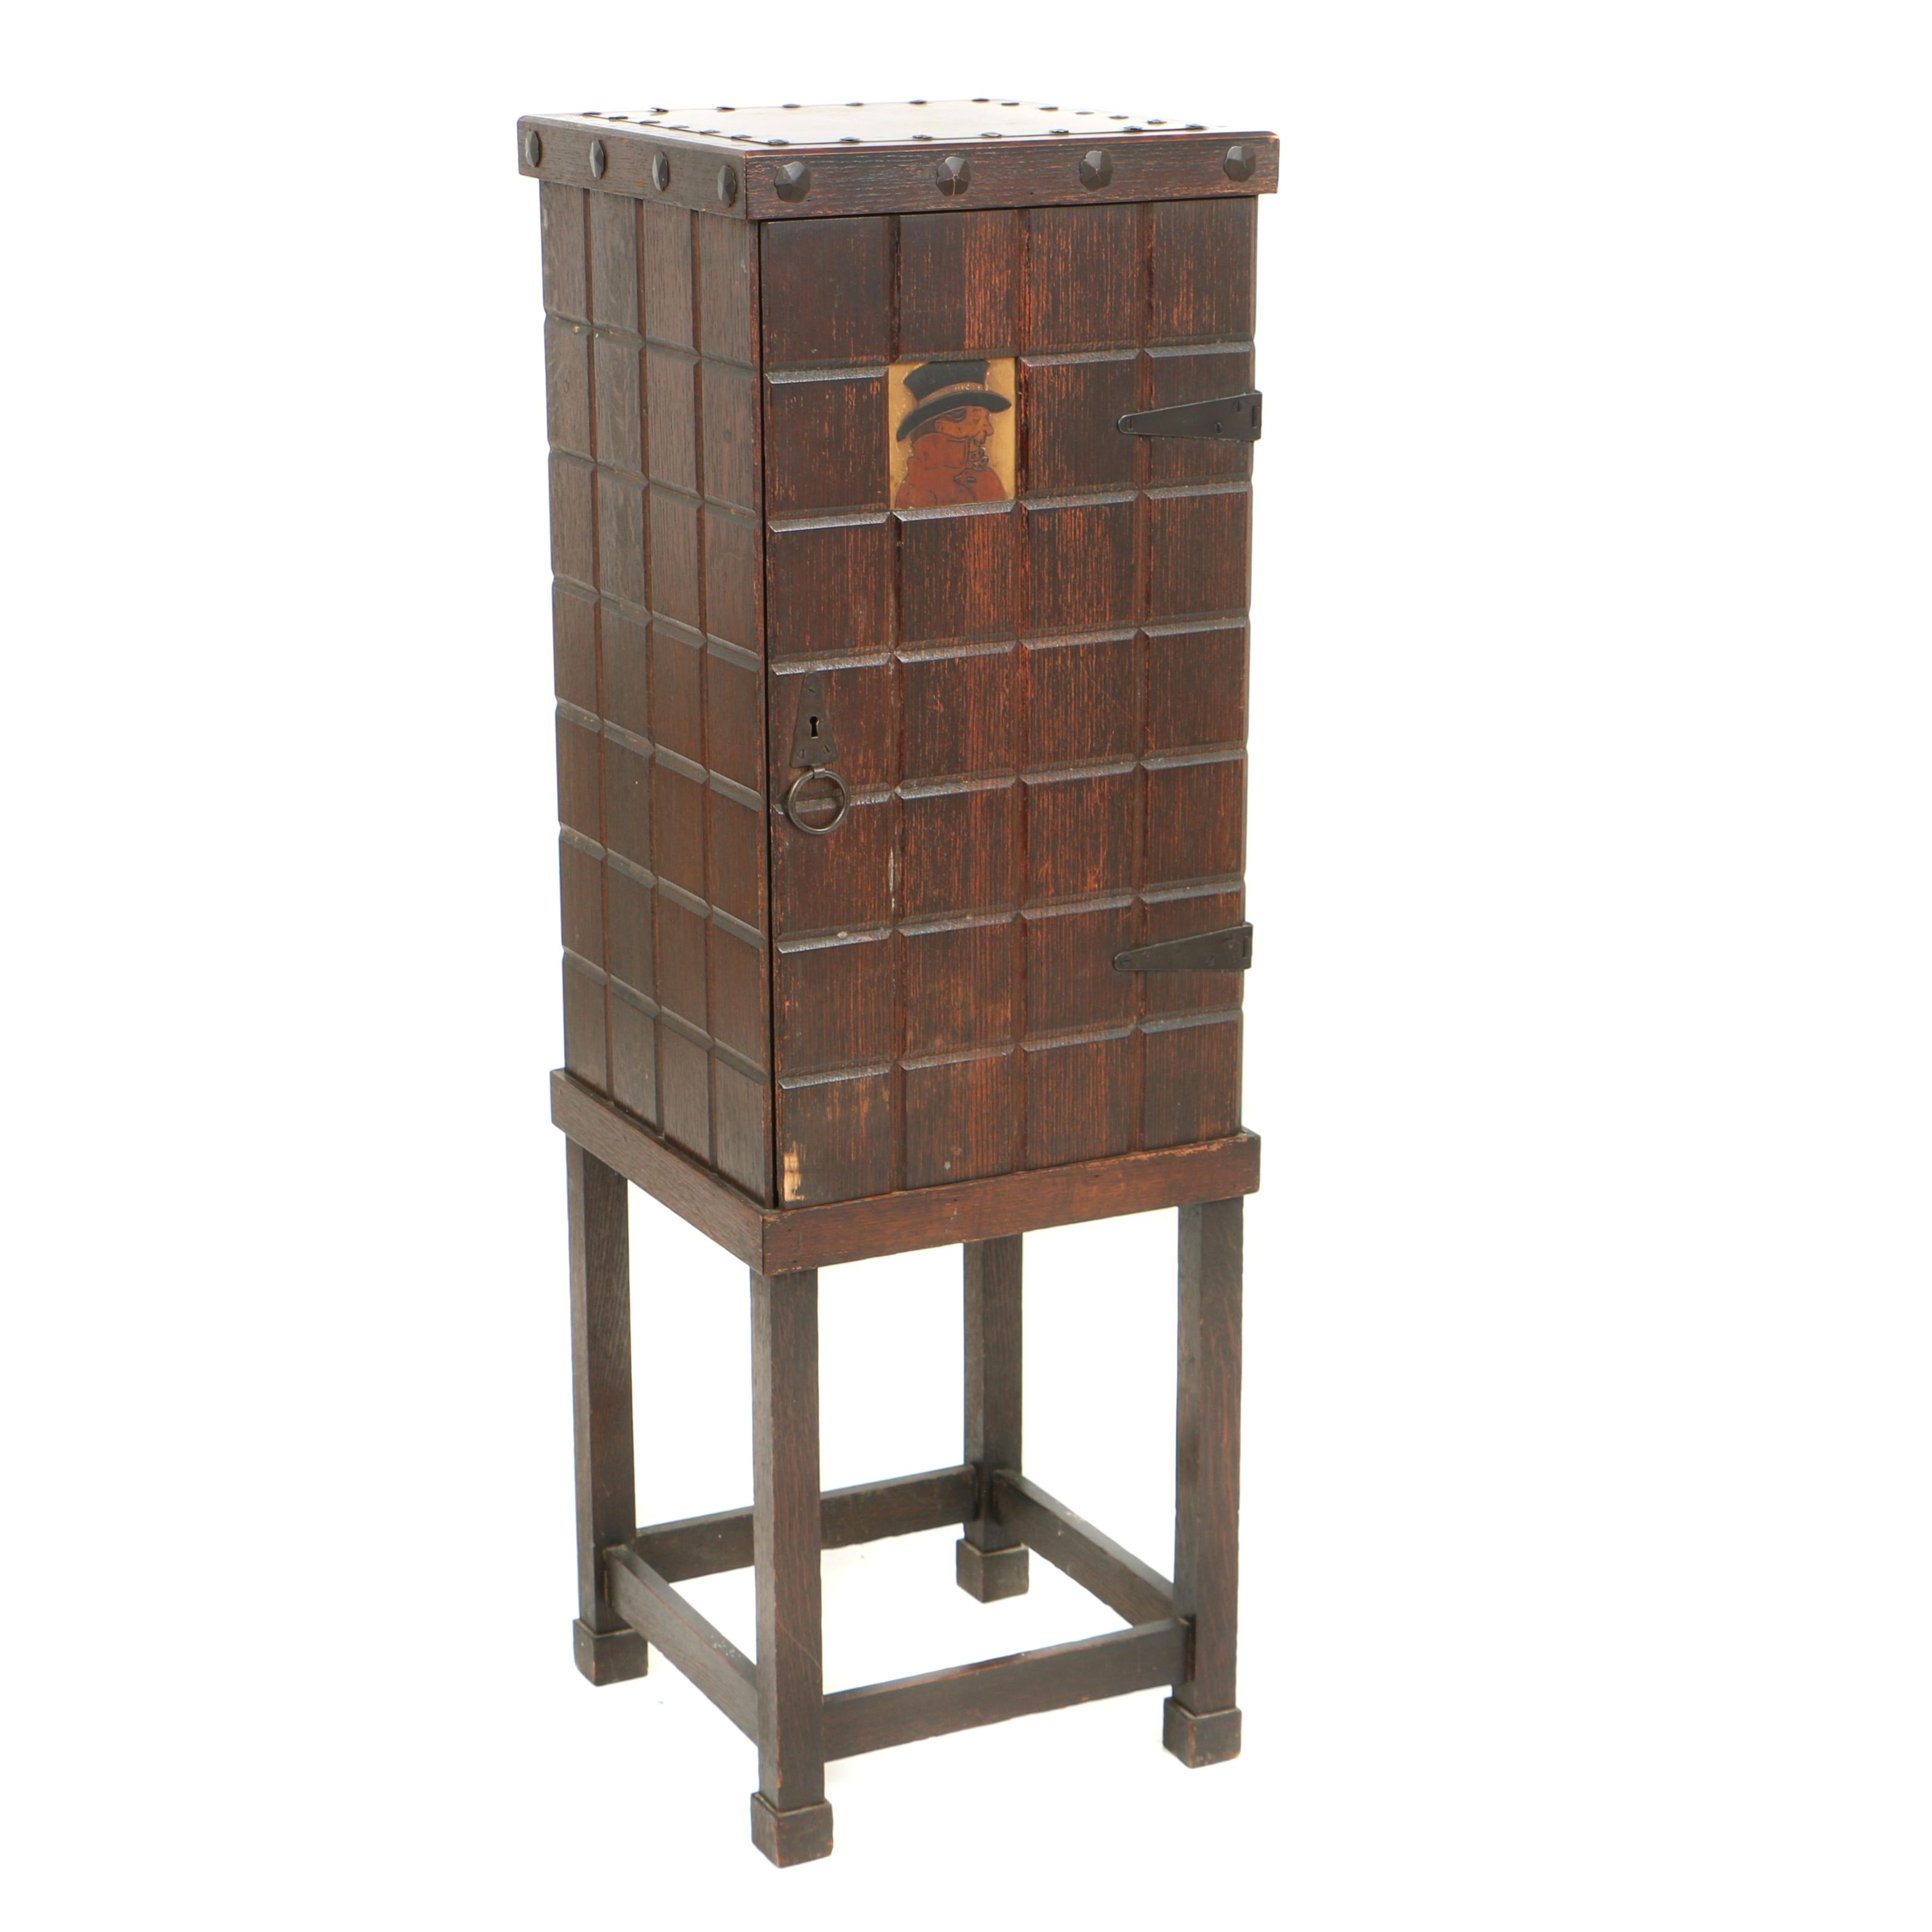 Early 20th Century Arts and Crafts Oak Smoker's Cabinet